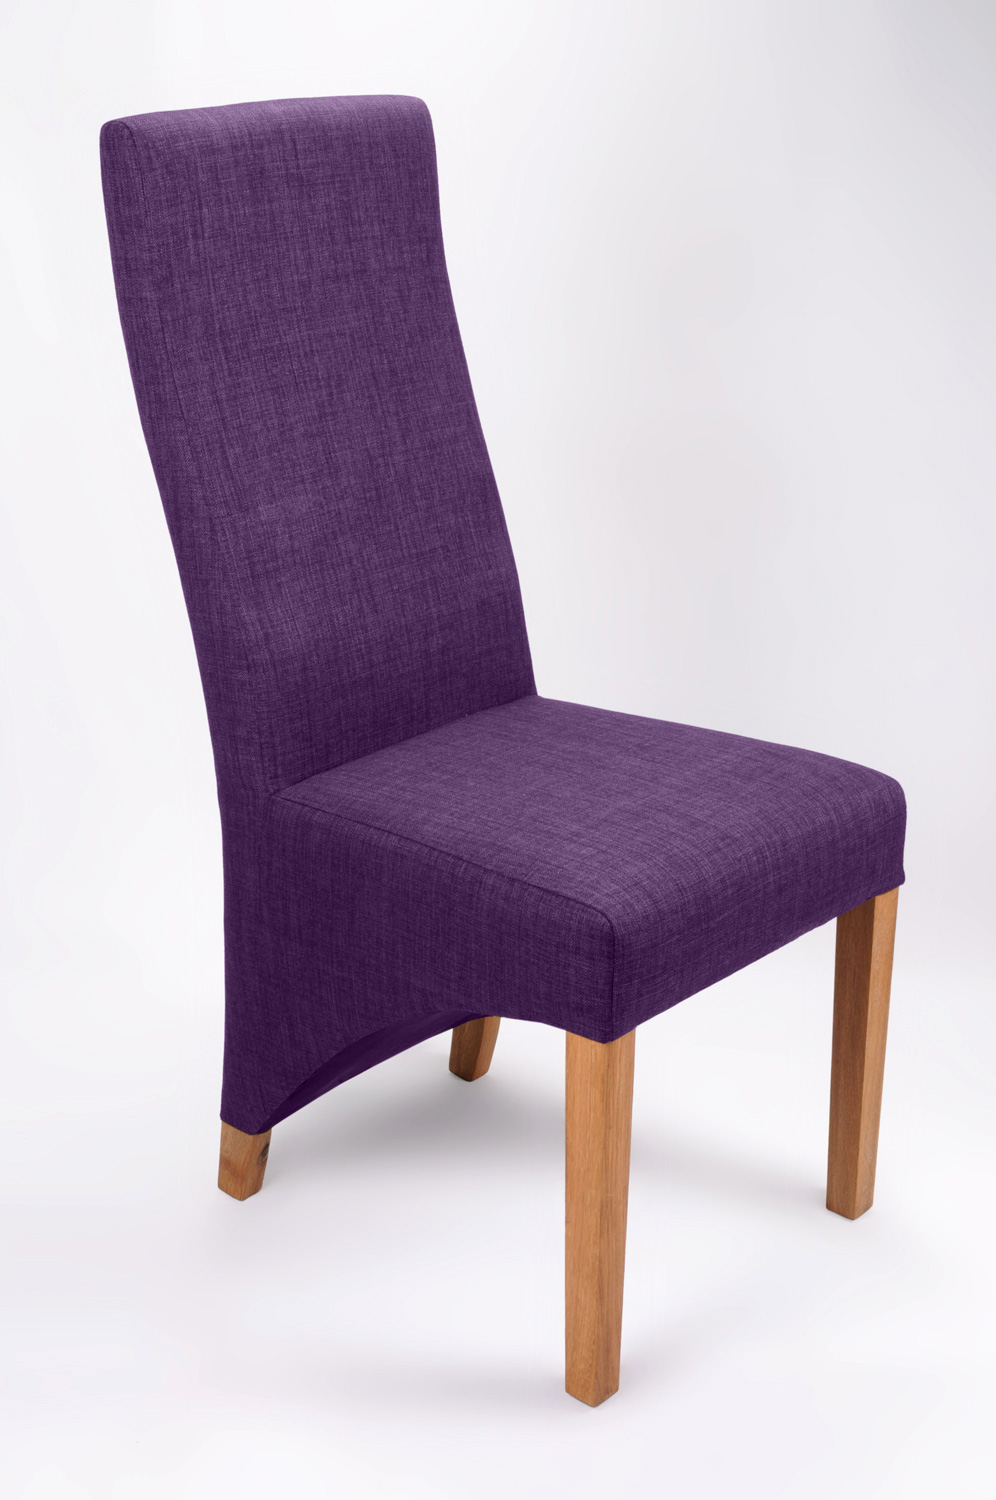 are new dining chairs for the festive period a must - the wave  a stunning addition to the new fabric stylesthis chair shown inthe new plum colour